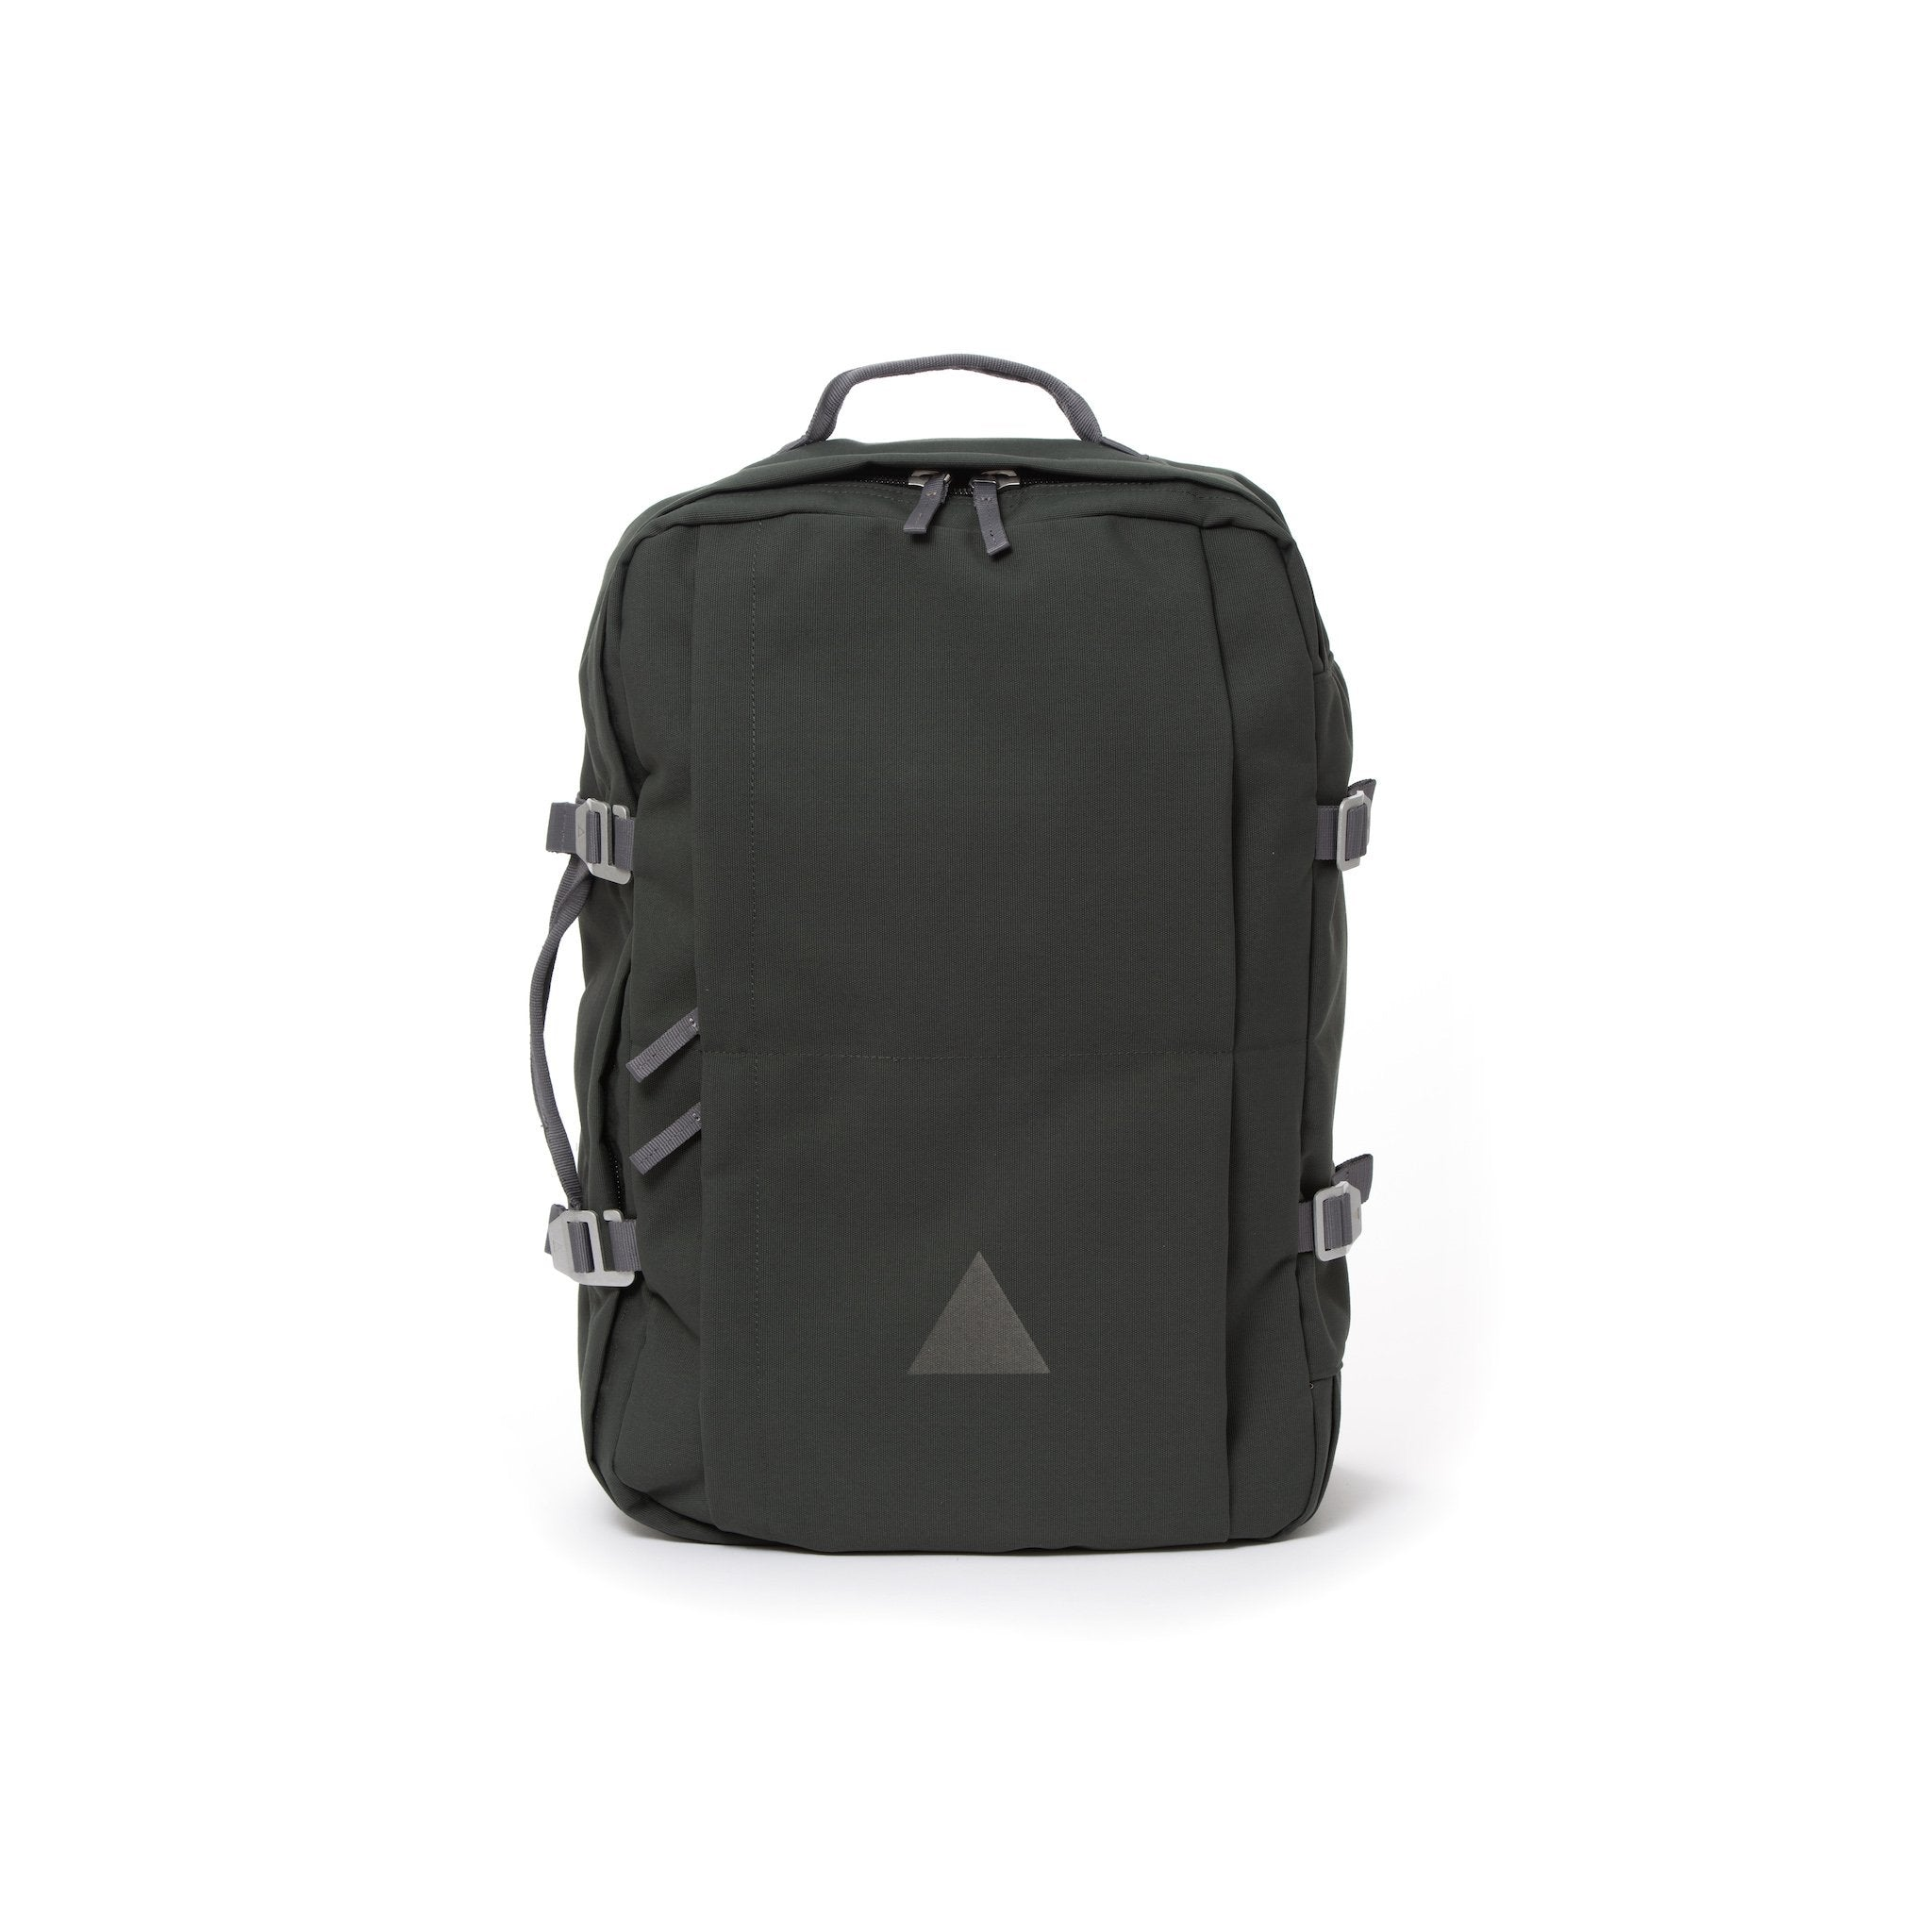 Grey recycled canvas travel backpack.